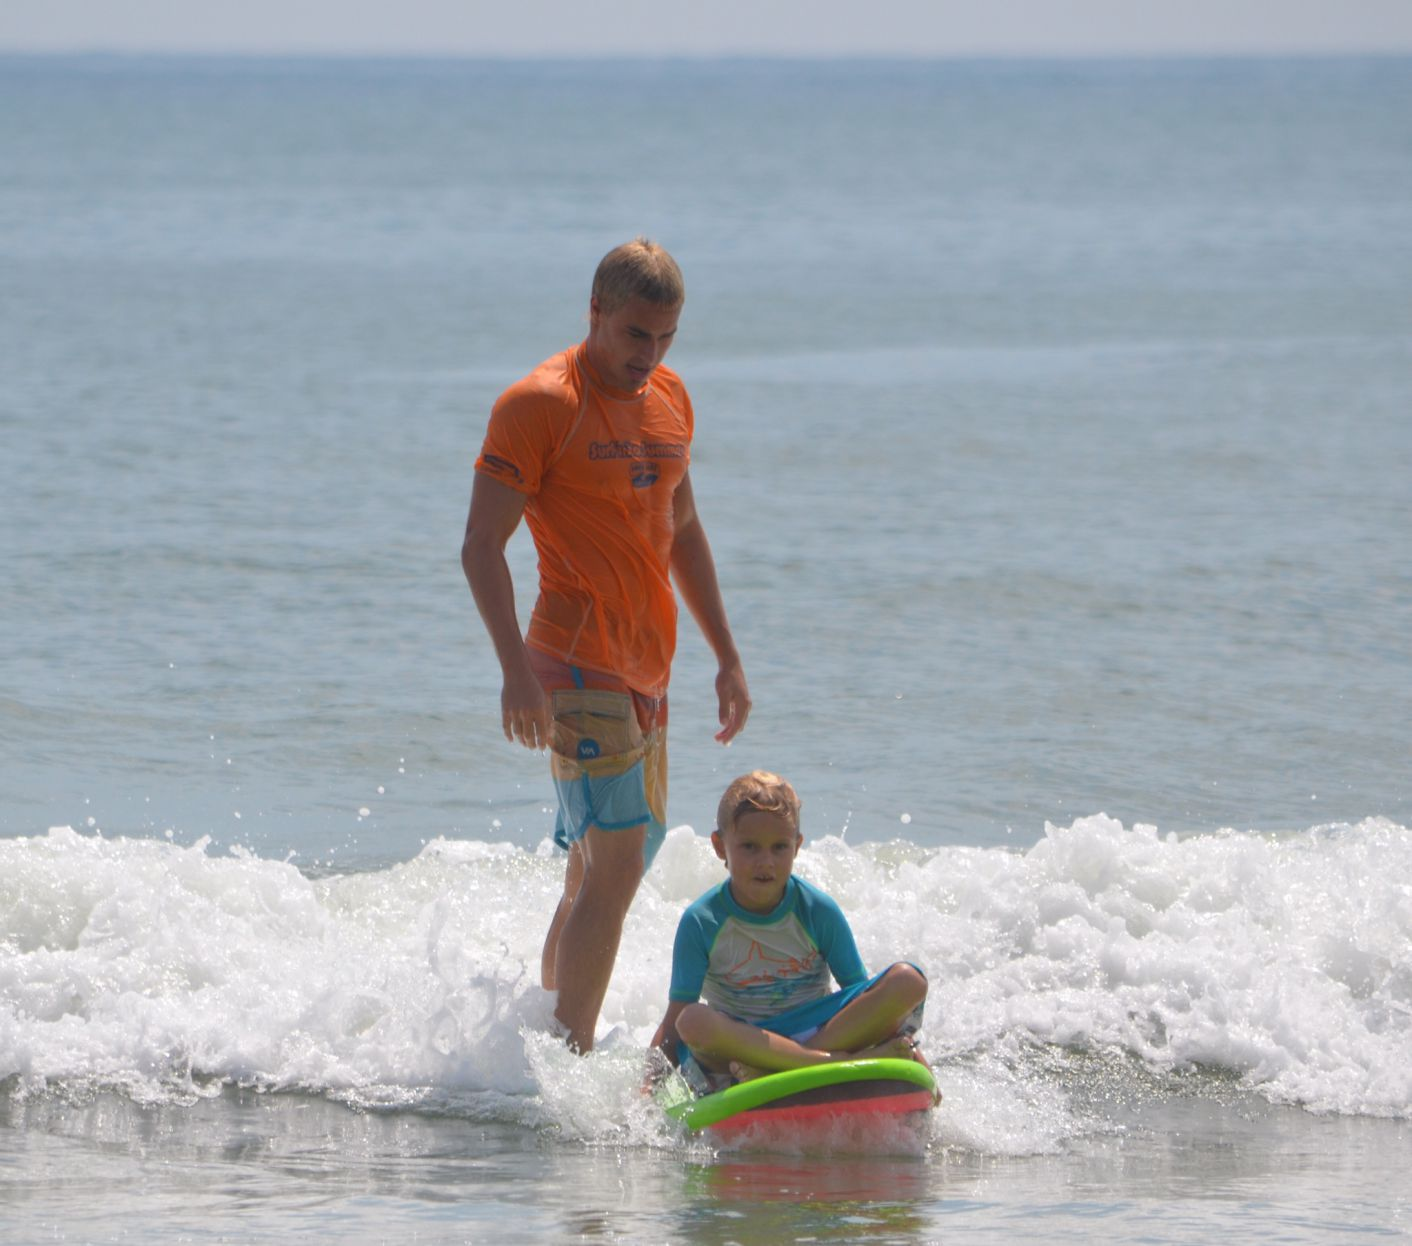 Surf Into Summer image 1